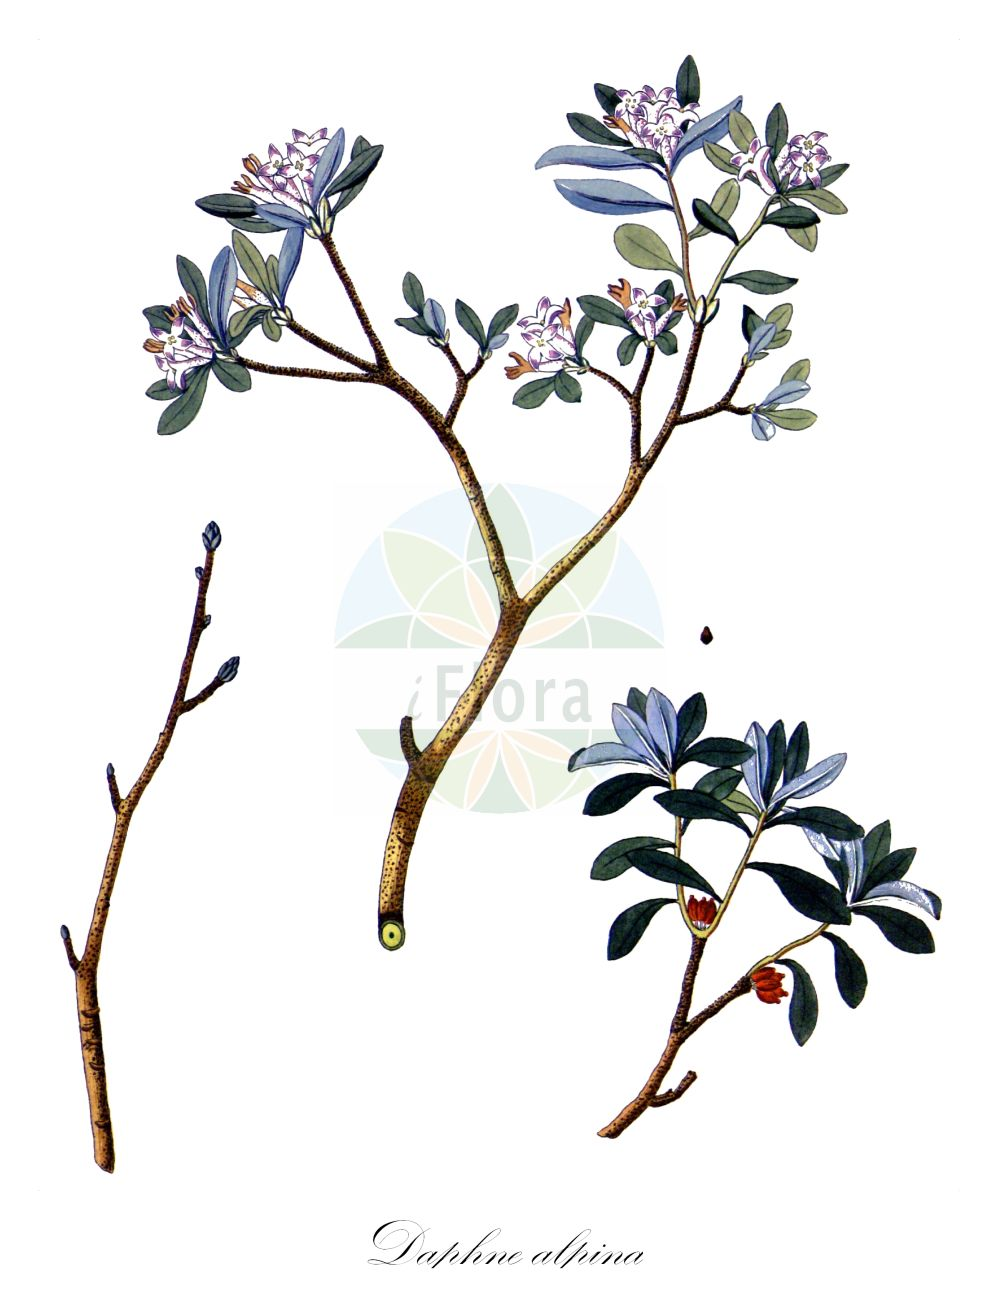 Historische Abbildung von Daphne alpina. Das Bild zeigt Blatt, Bluete, Frucht und Same. ---- Historical Drawing of Daphne alpina.The image is showing leaf, flower, fruit and seed. (Daphne alpina,Daphne,Seidelbast,Daphne,Thymelaeaceae,Spatzenzungengewaechse;Seidelbastgewaechse,Daphne family,Blatt,Bluete,Frucht,Same,leaf,flower,fruit,seed,Krauss (1802f))